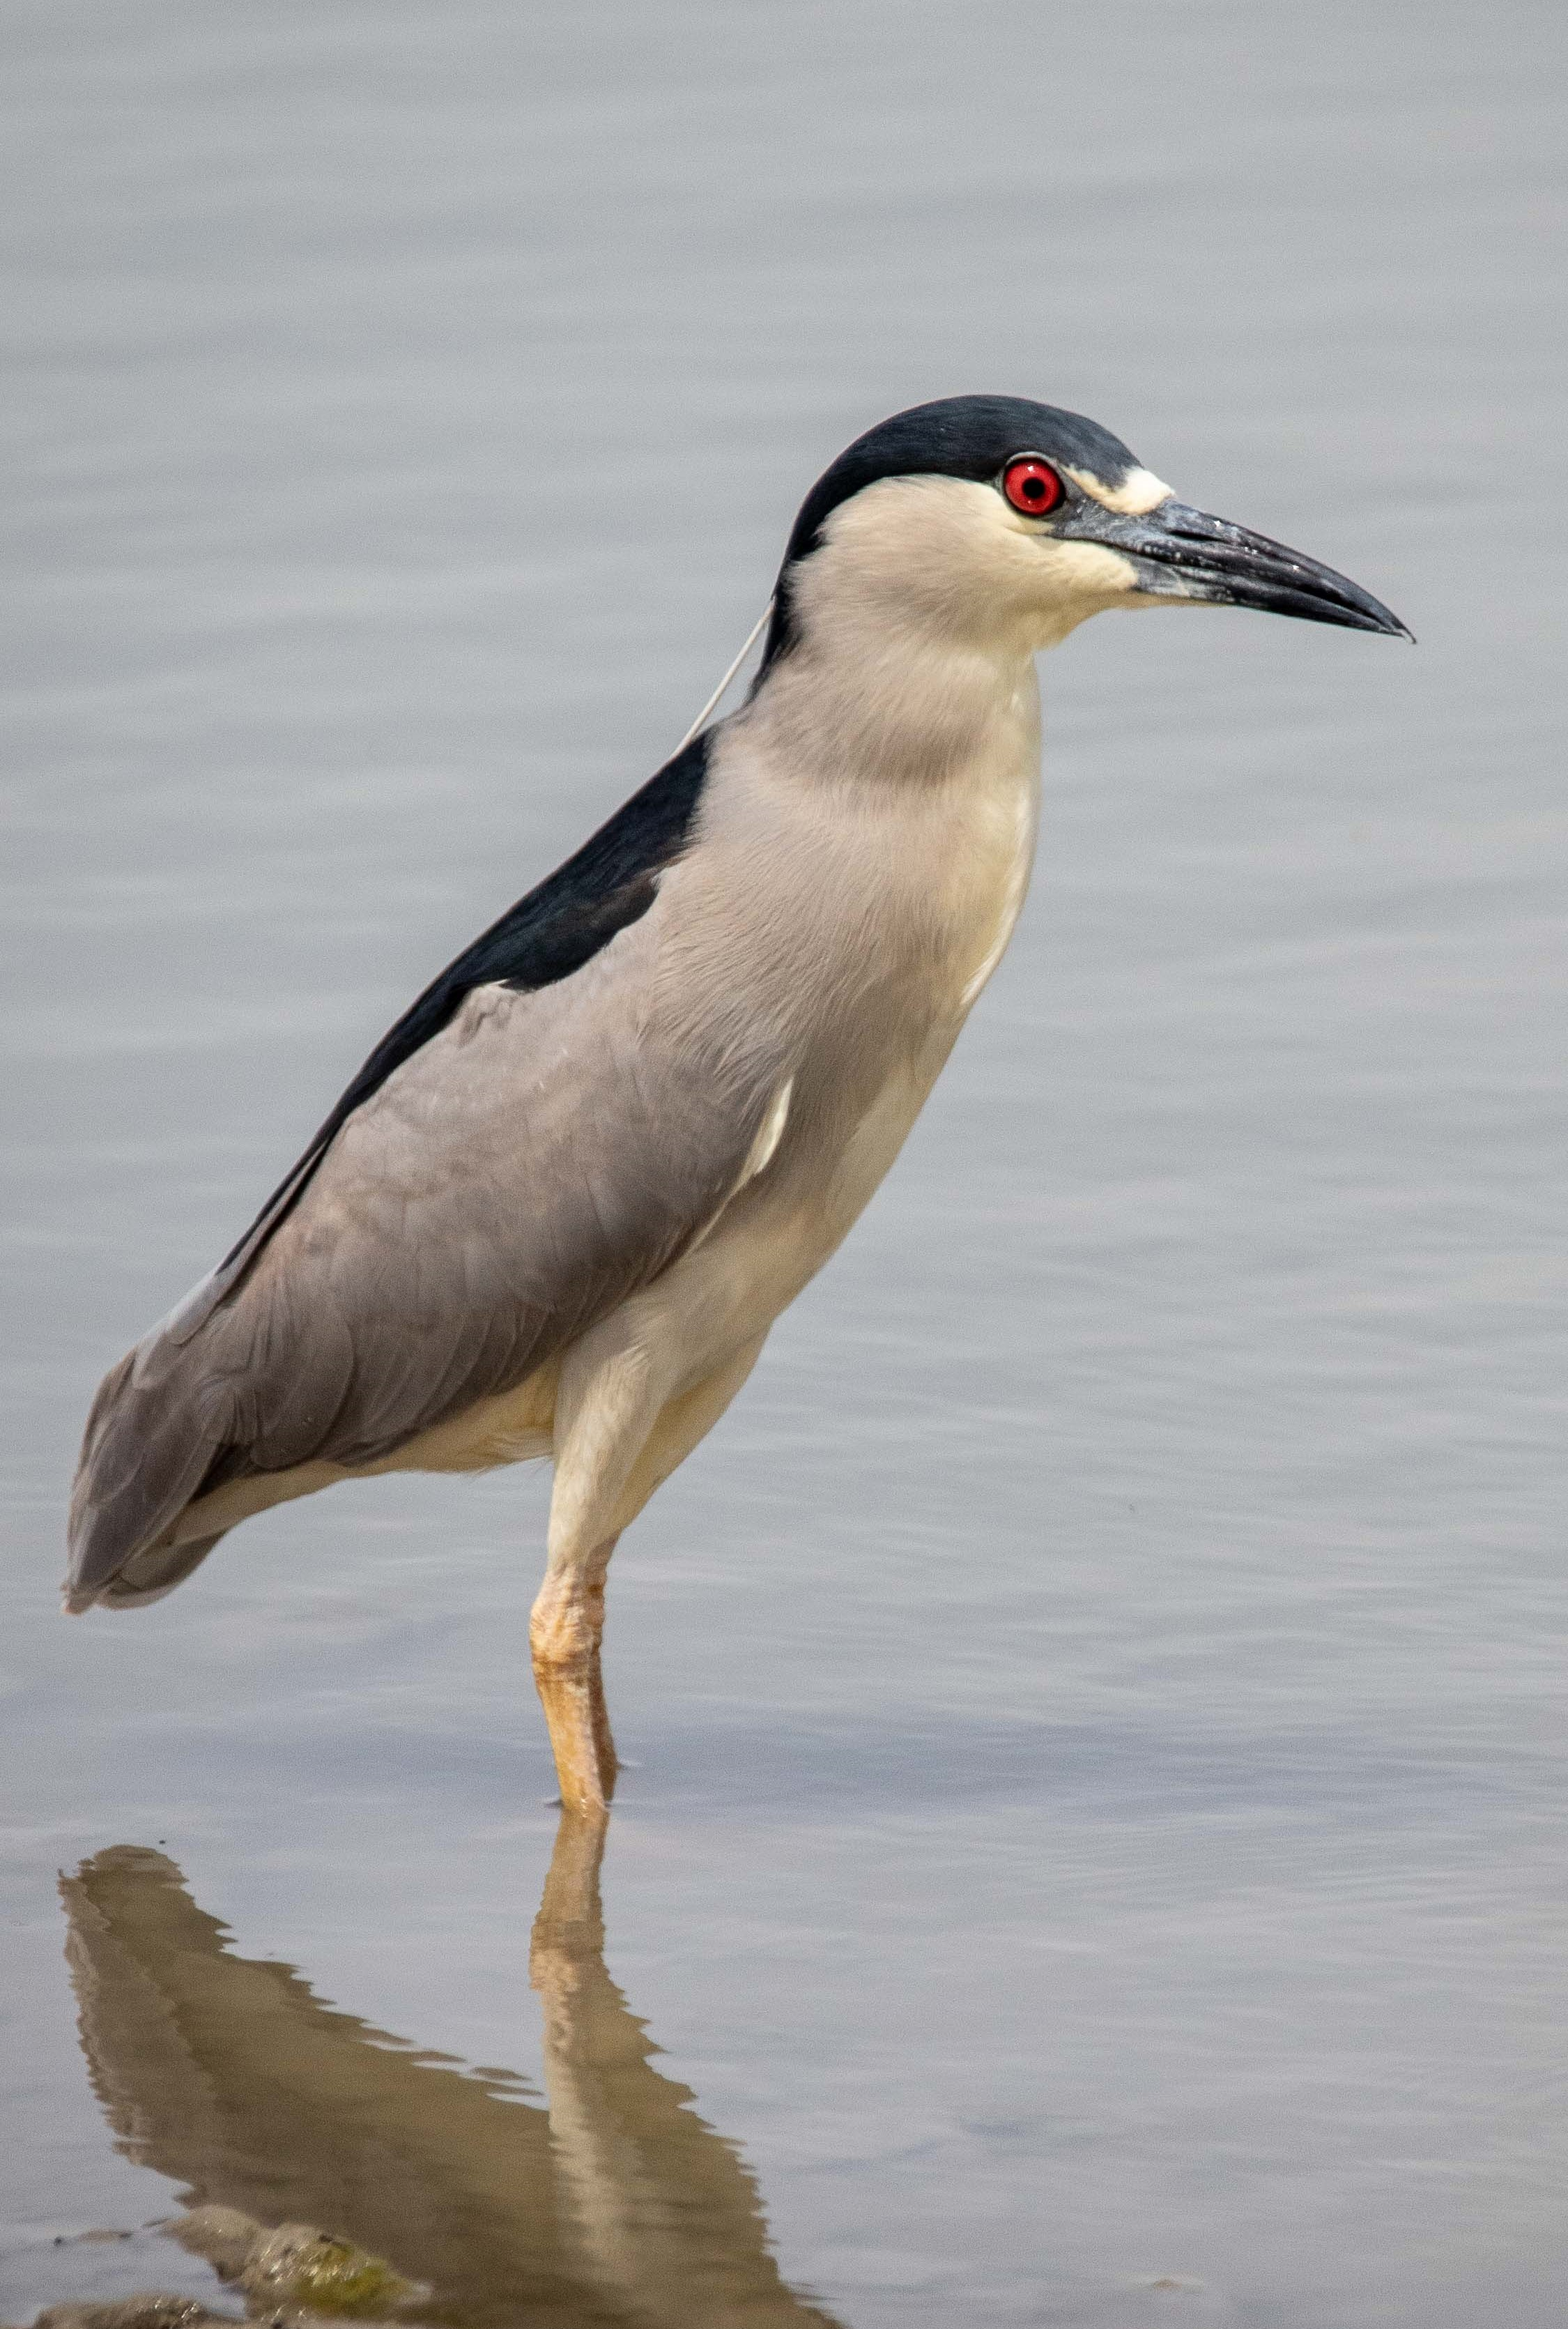 Figure 1: A black-crowned night heron standing in water at the Bear River Migratory Bird Refuge on the GSL. Photo credit: Gary Witt.